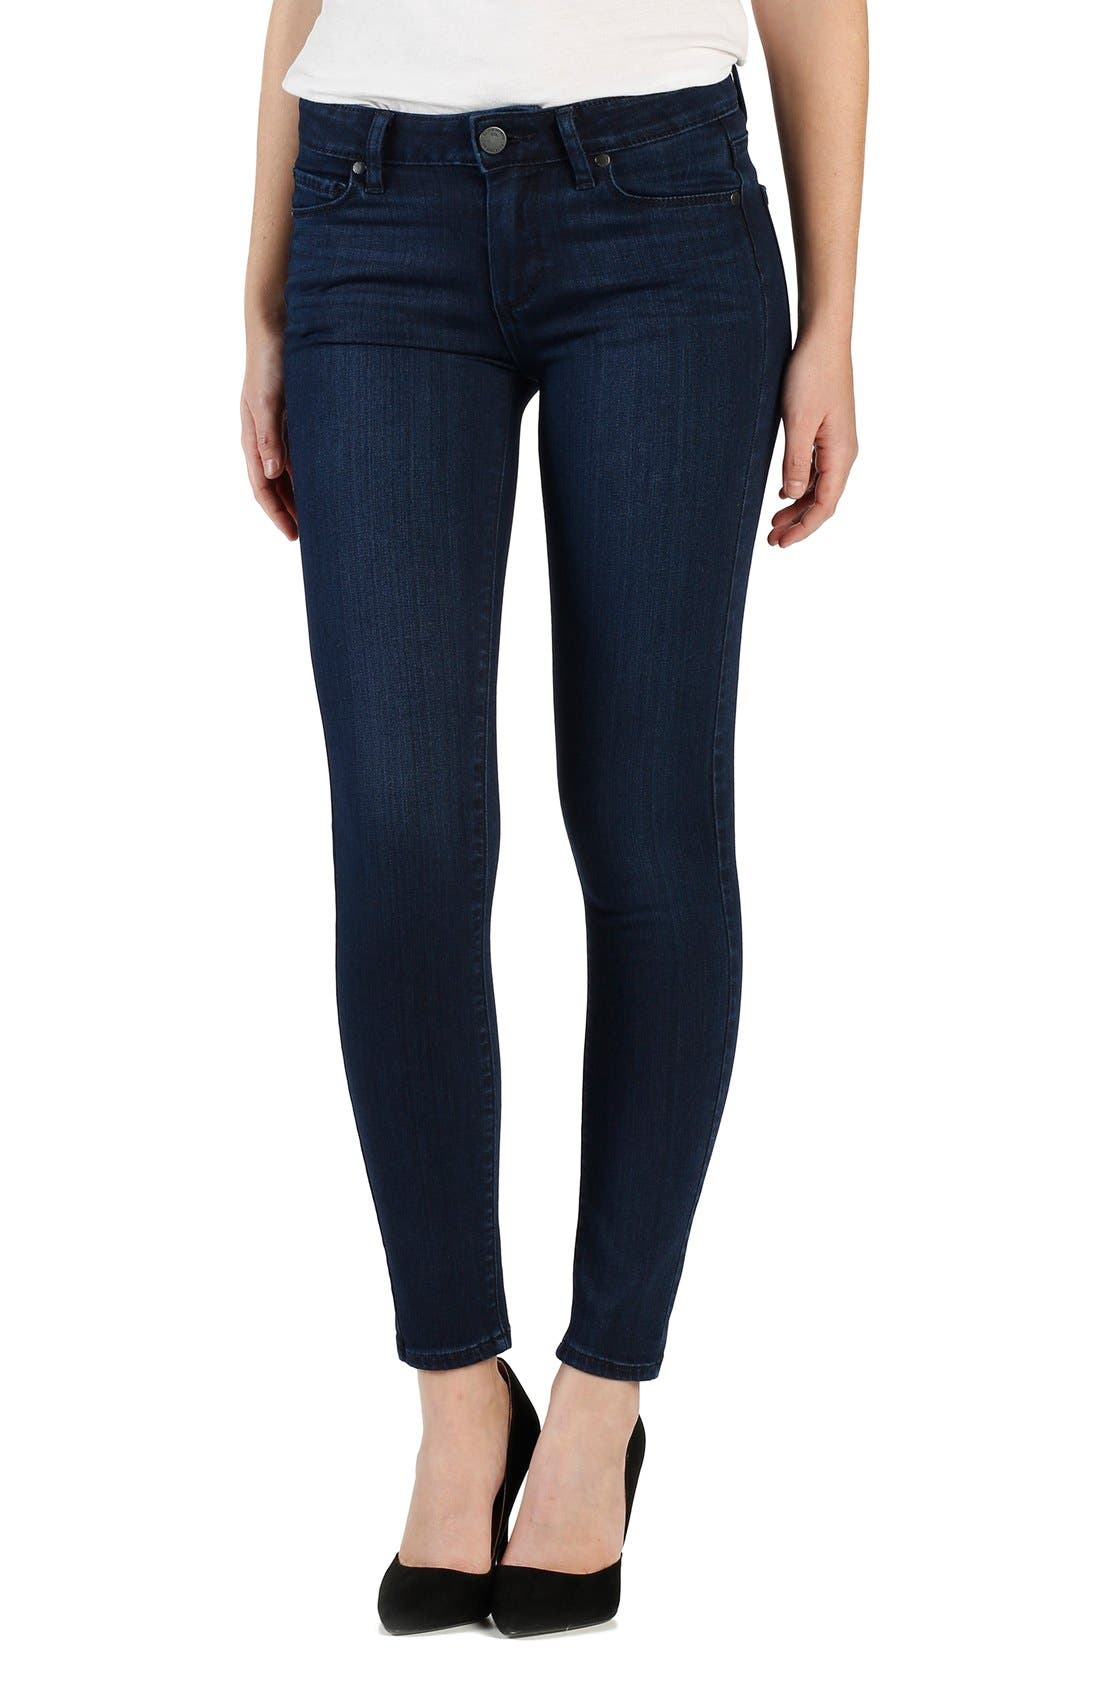 Alternate Image 1 Selected - PAIGE 'Transcend - Verdugo' Ultra Skinny Ankle Jeans (Holly)